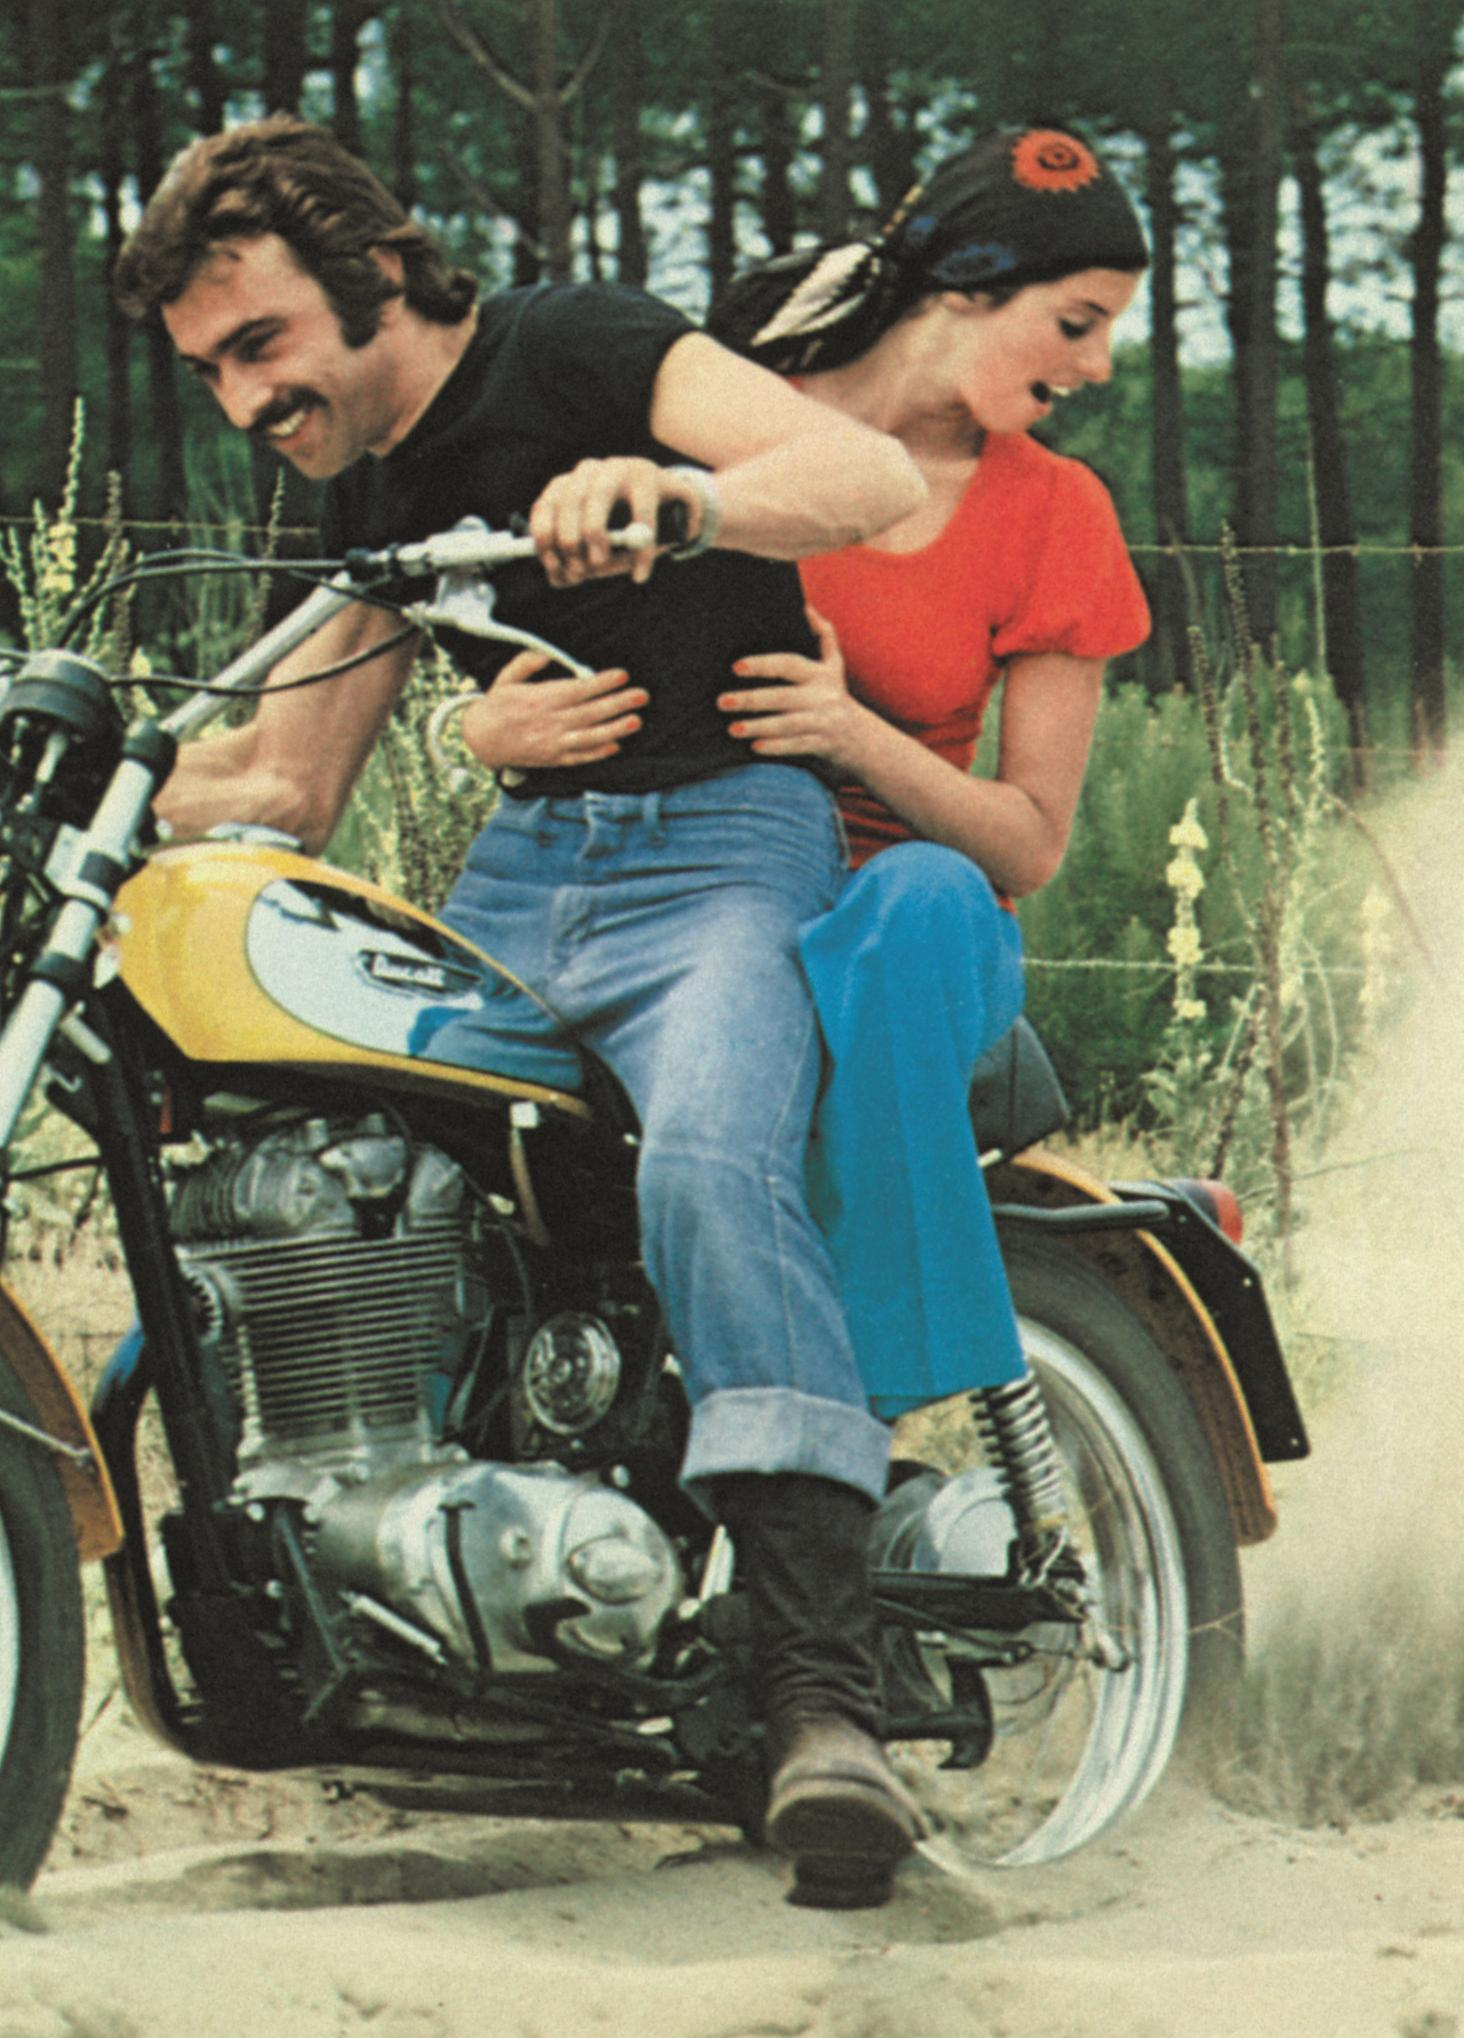 Franco y Elvira at Ducati Scrambler in 1962